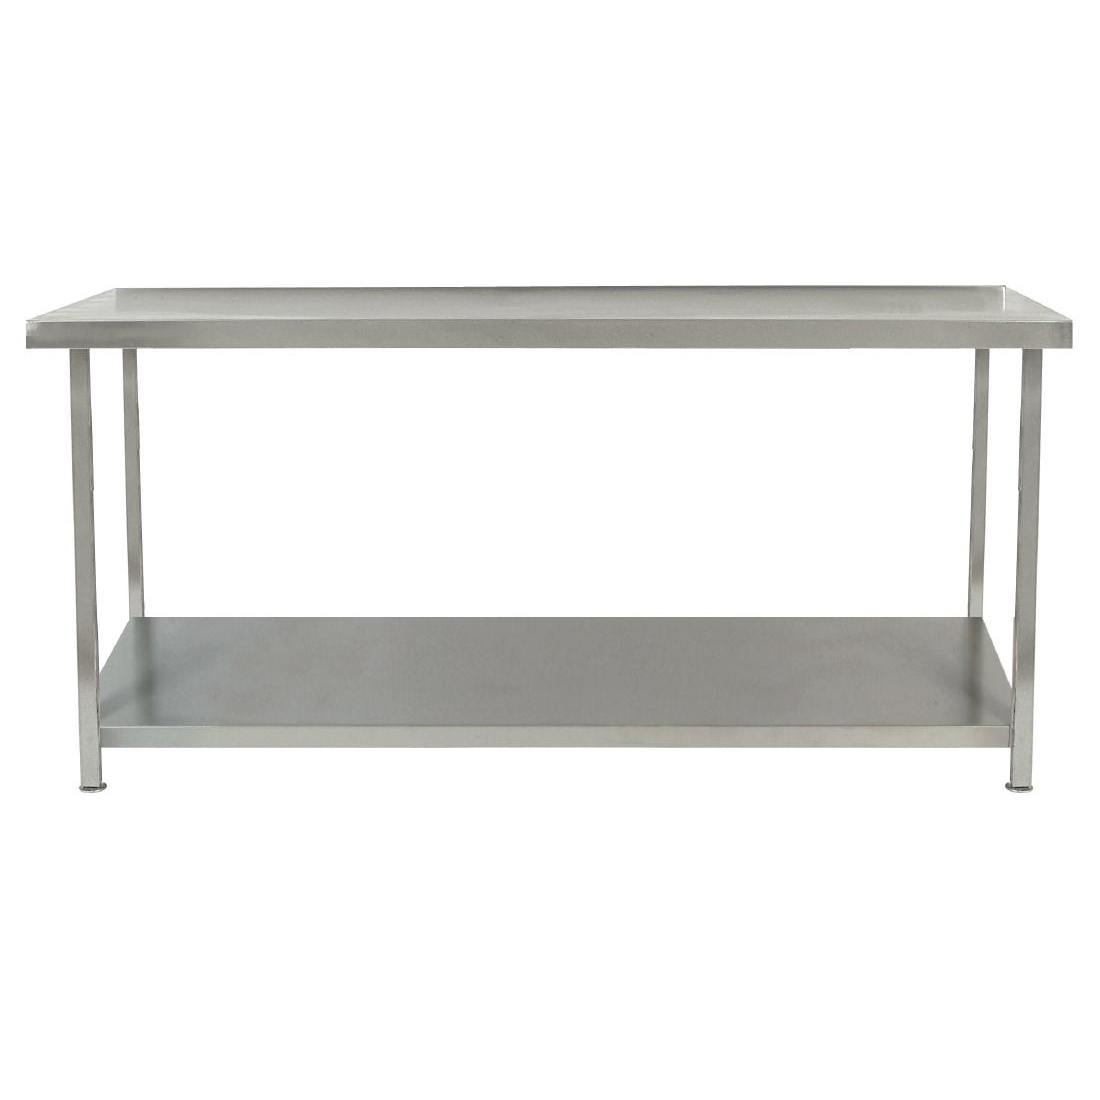 Parry Fully Welded Stainless Steel Centre Table with Undershelf 1500x600mm